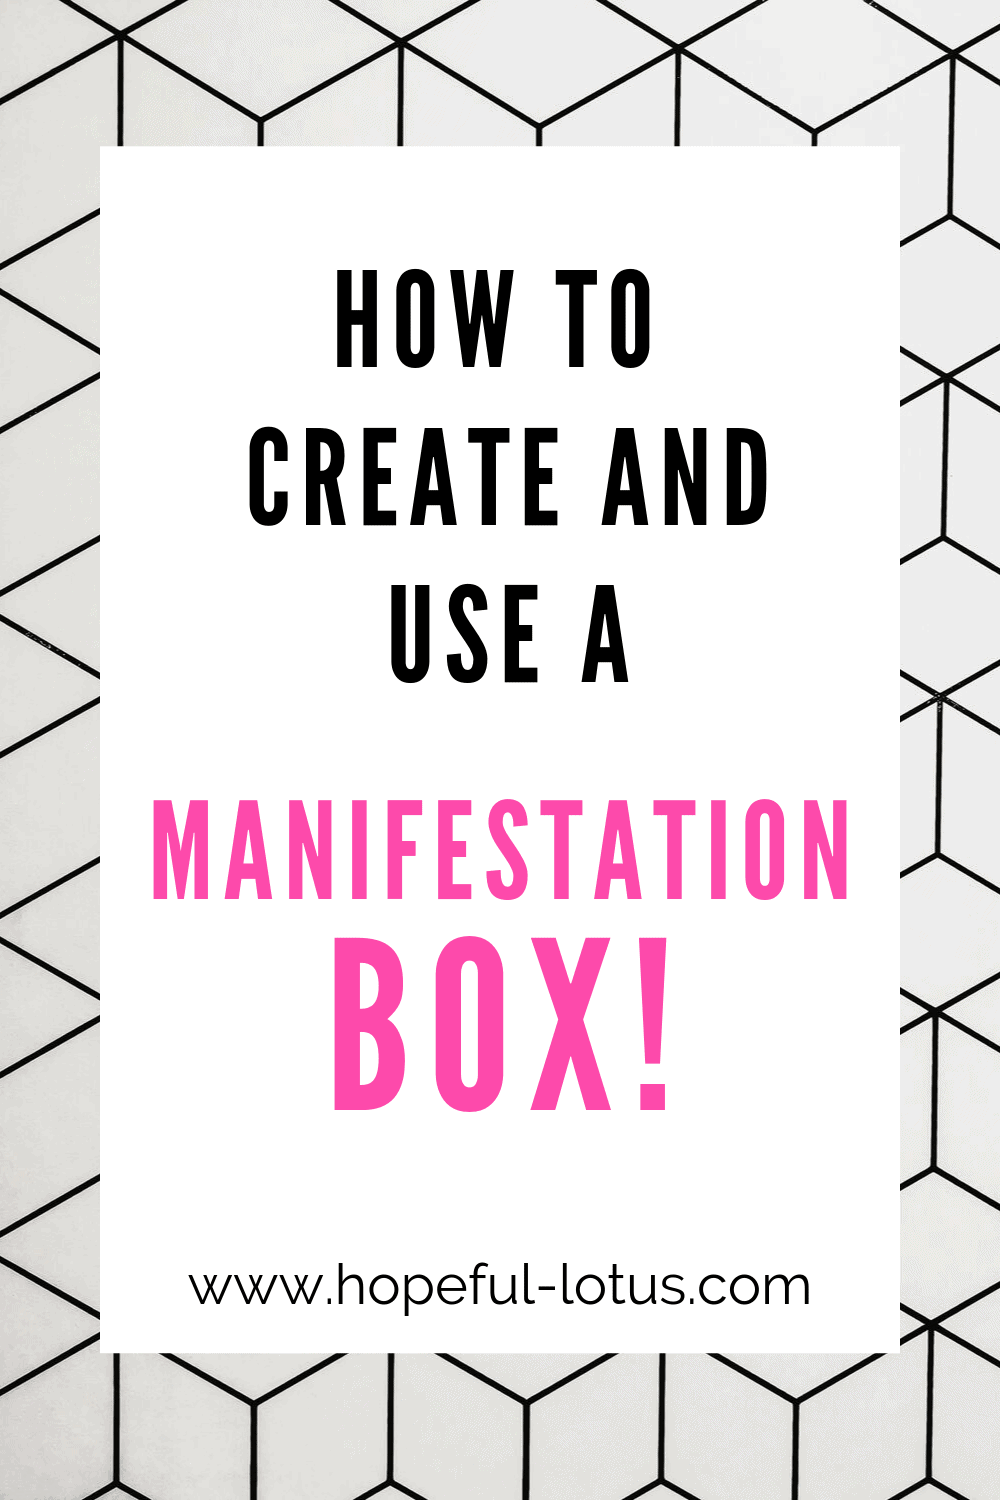 Looking to increase the power of the law of attraction? Why not try creating your own DIY manifestation box? This post is full of ideas to get started with your manifesting journey!